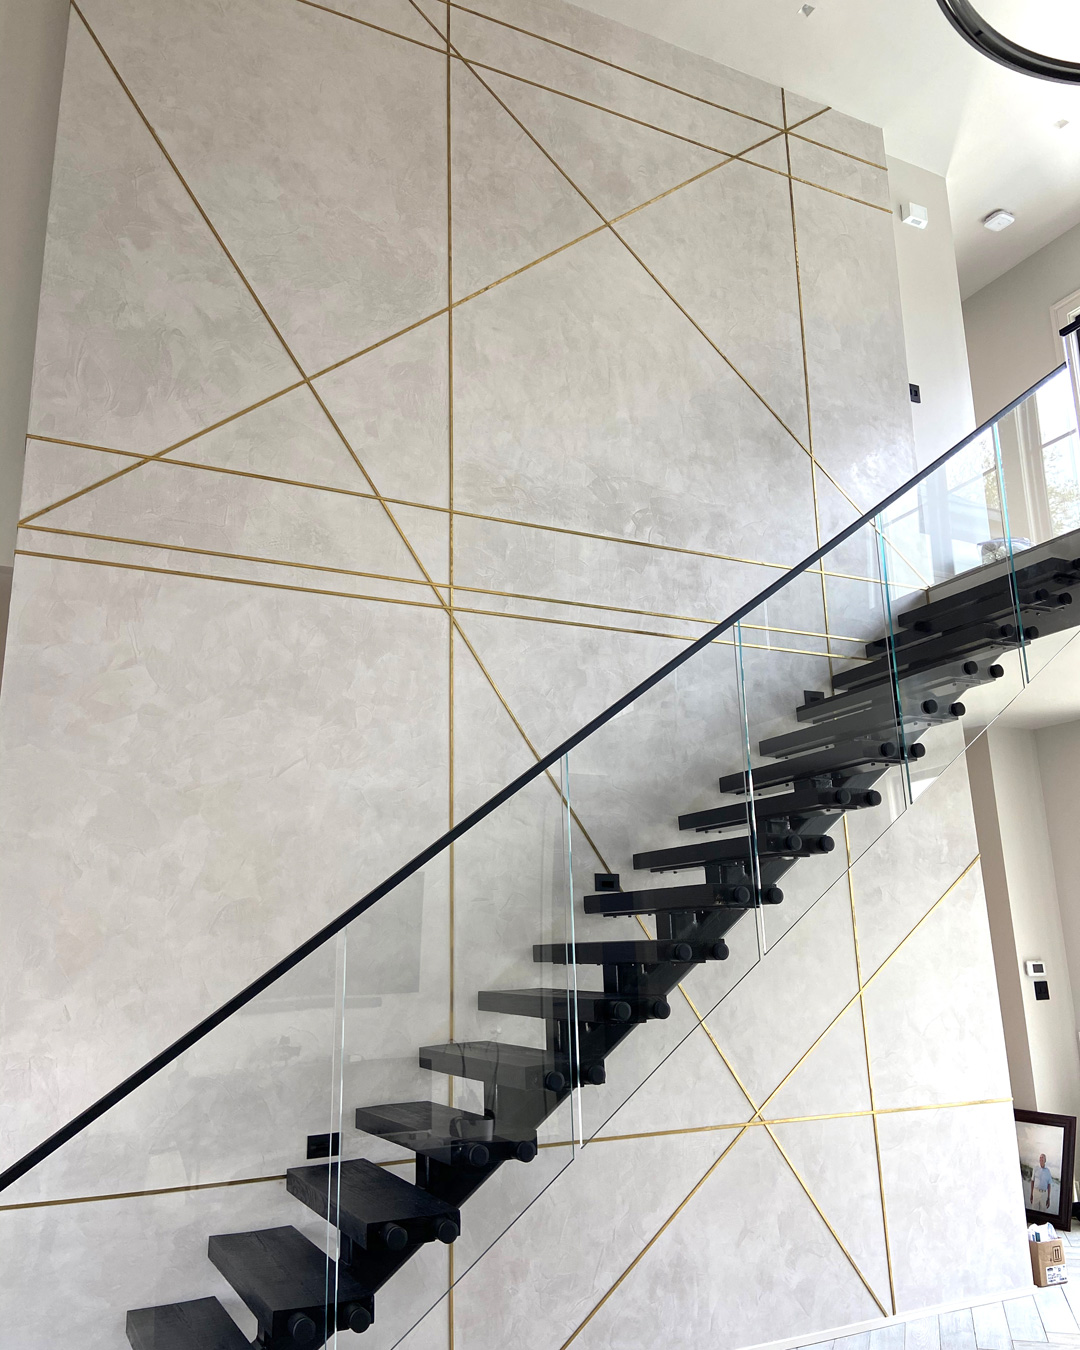 Sylvia T Designs – A new construction, residential project in the Lakeview neighborhood of New Orleans. This stunning feature wall in the living area boasts a beautiful gloss plaster finish and metal inlays. It's a showstopper!